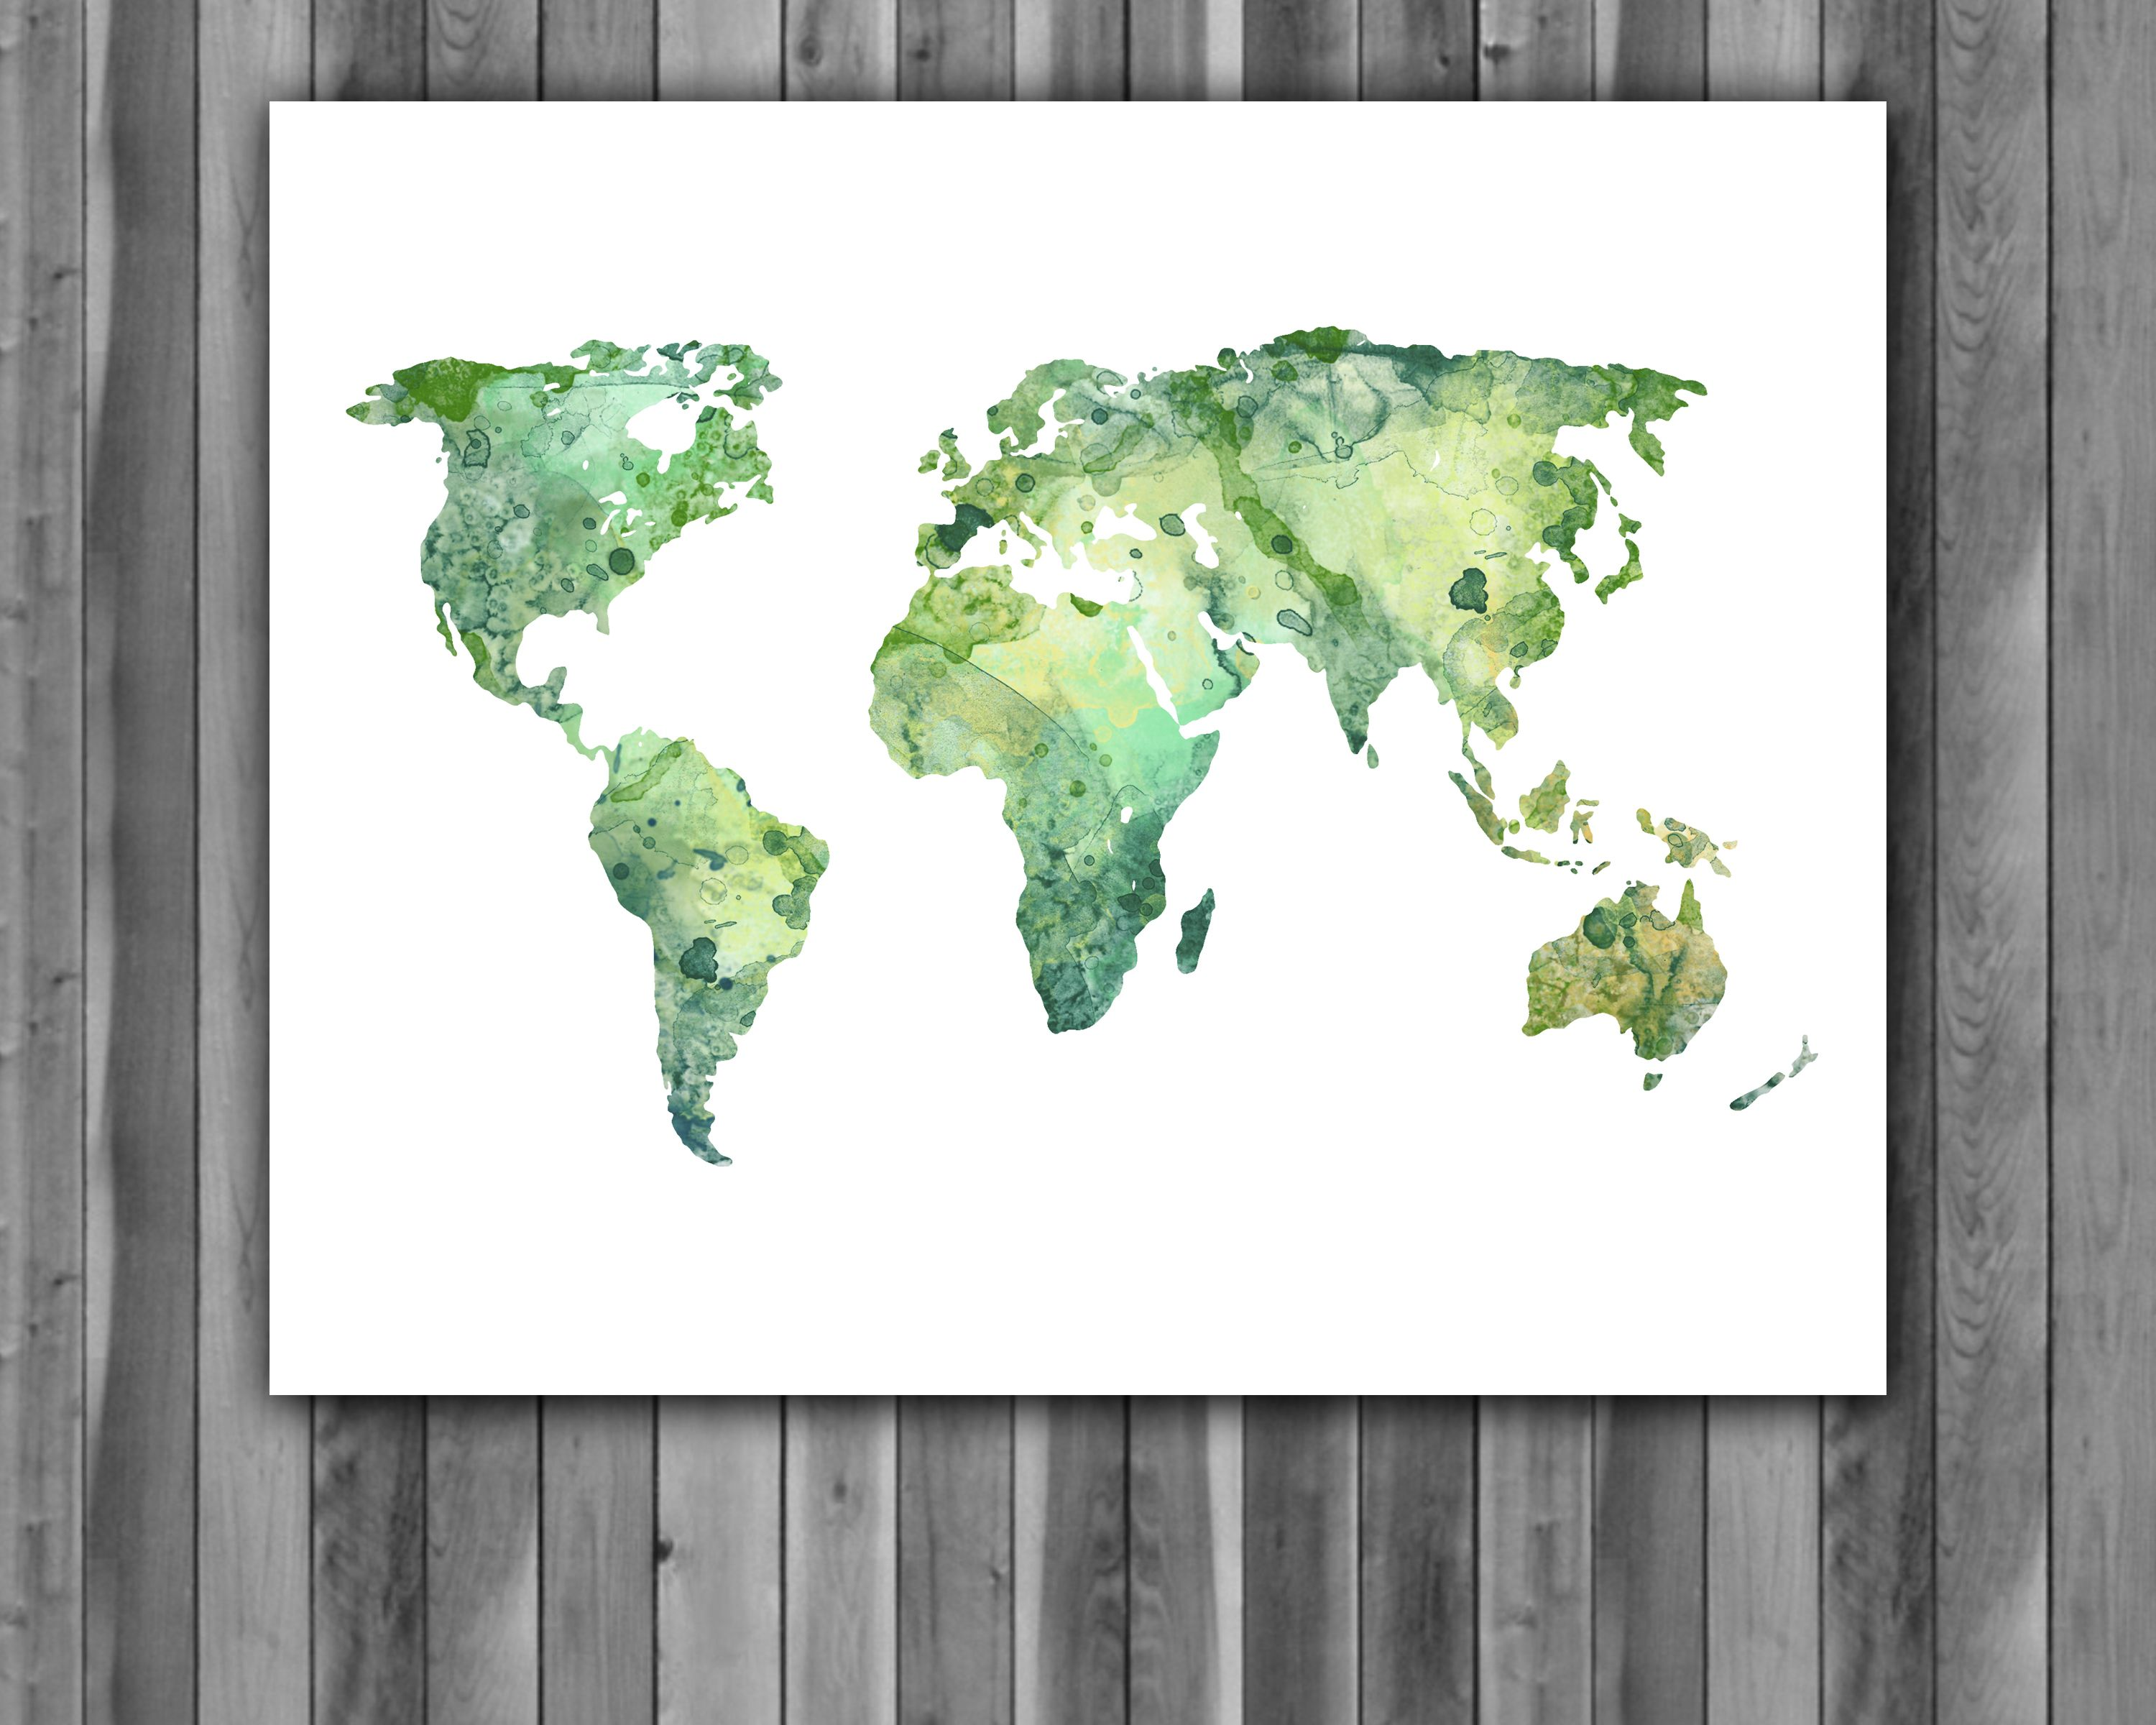 World map poster watercolor painting wall art print instant download world map poster watercolor painting wall art print instant download home decor gumiabroncs Images